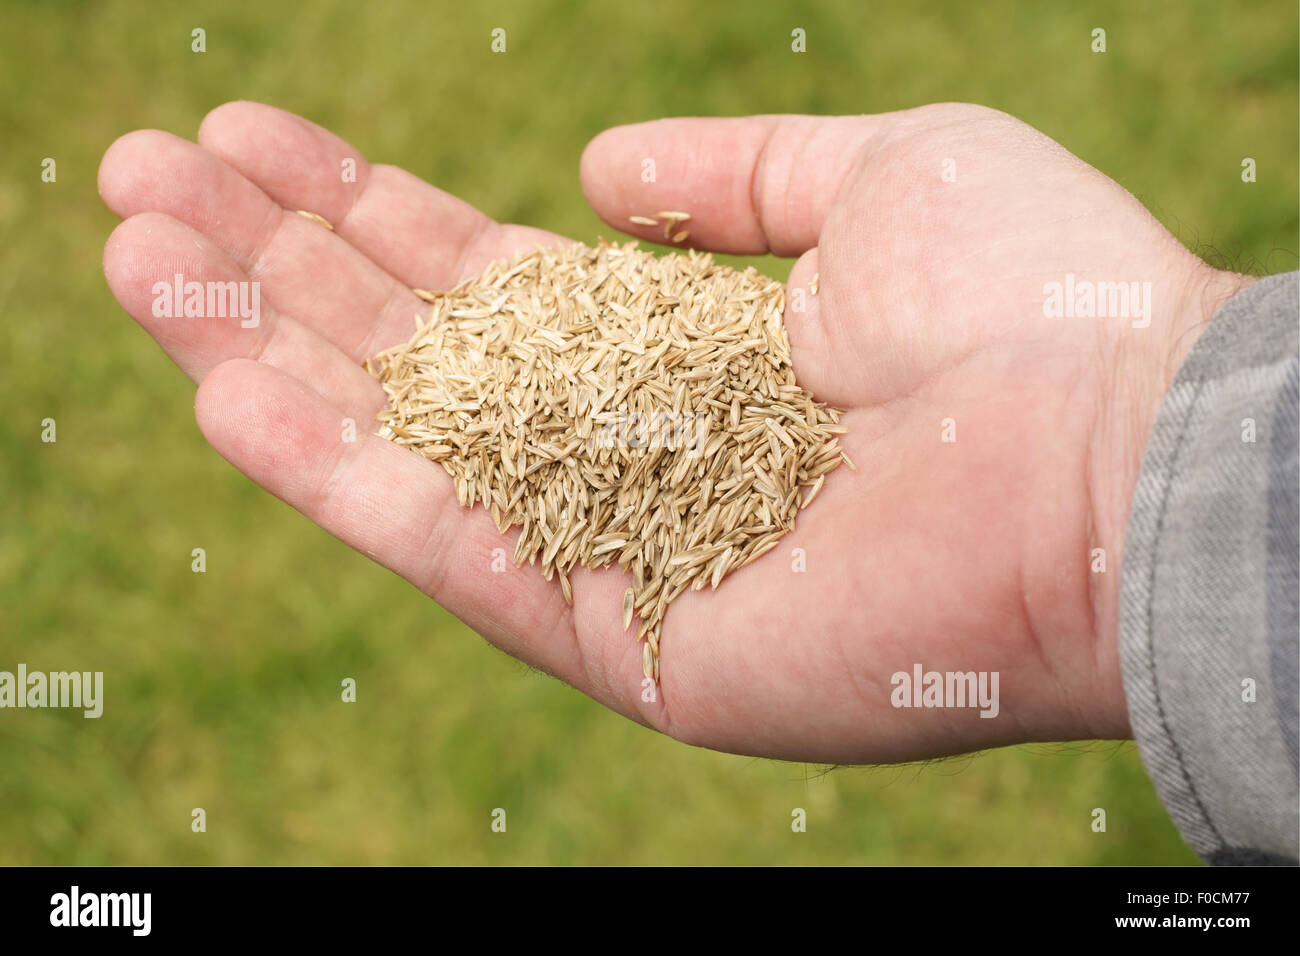 Male hand holding grass seed against a defocussed lawn background - Stock Image